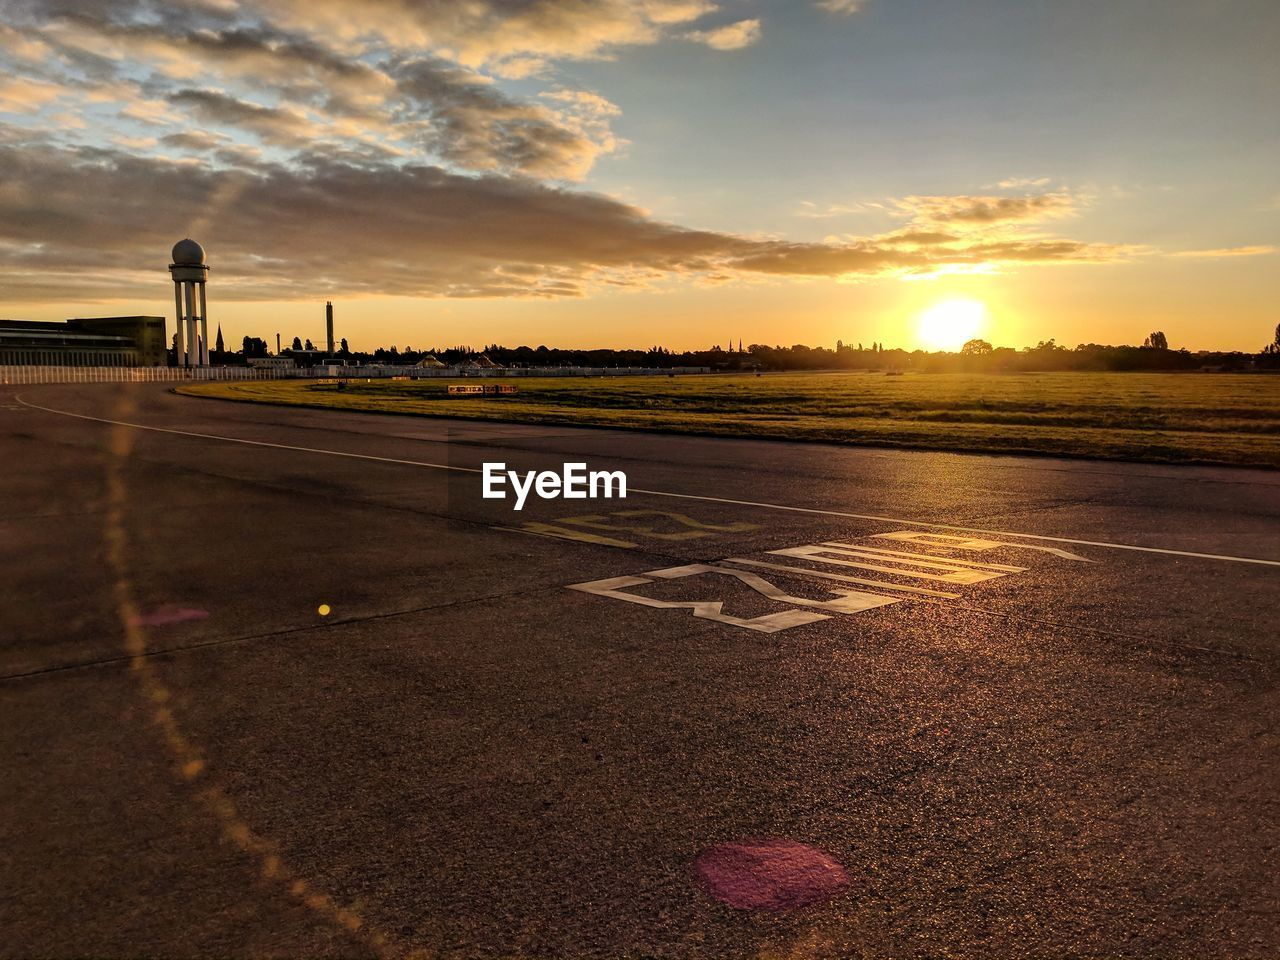 sunset, sky, cloud - sky, airport runway, transportation, runway, airport, airplane, no people, outdoors, nature, landscape, scenics, beauty in nature, day